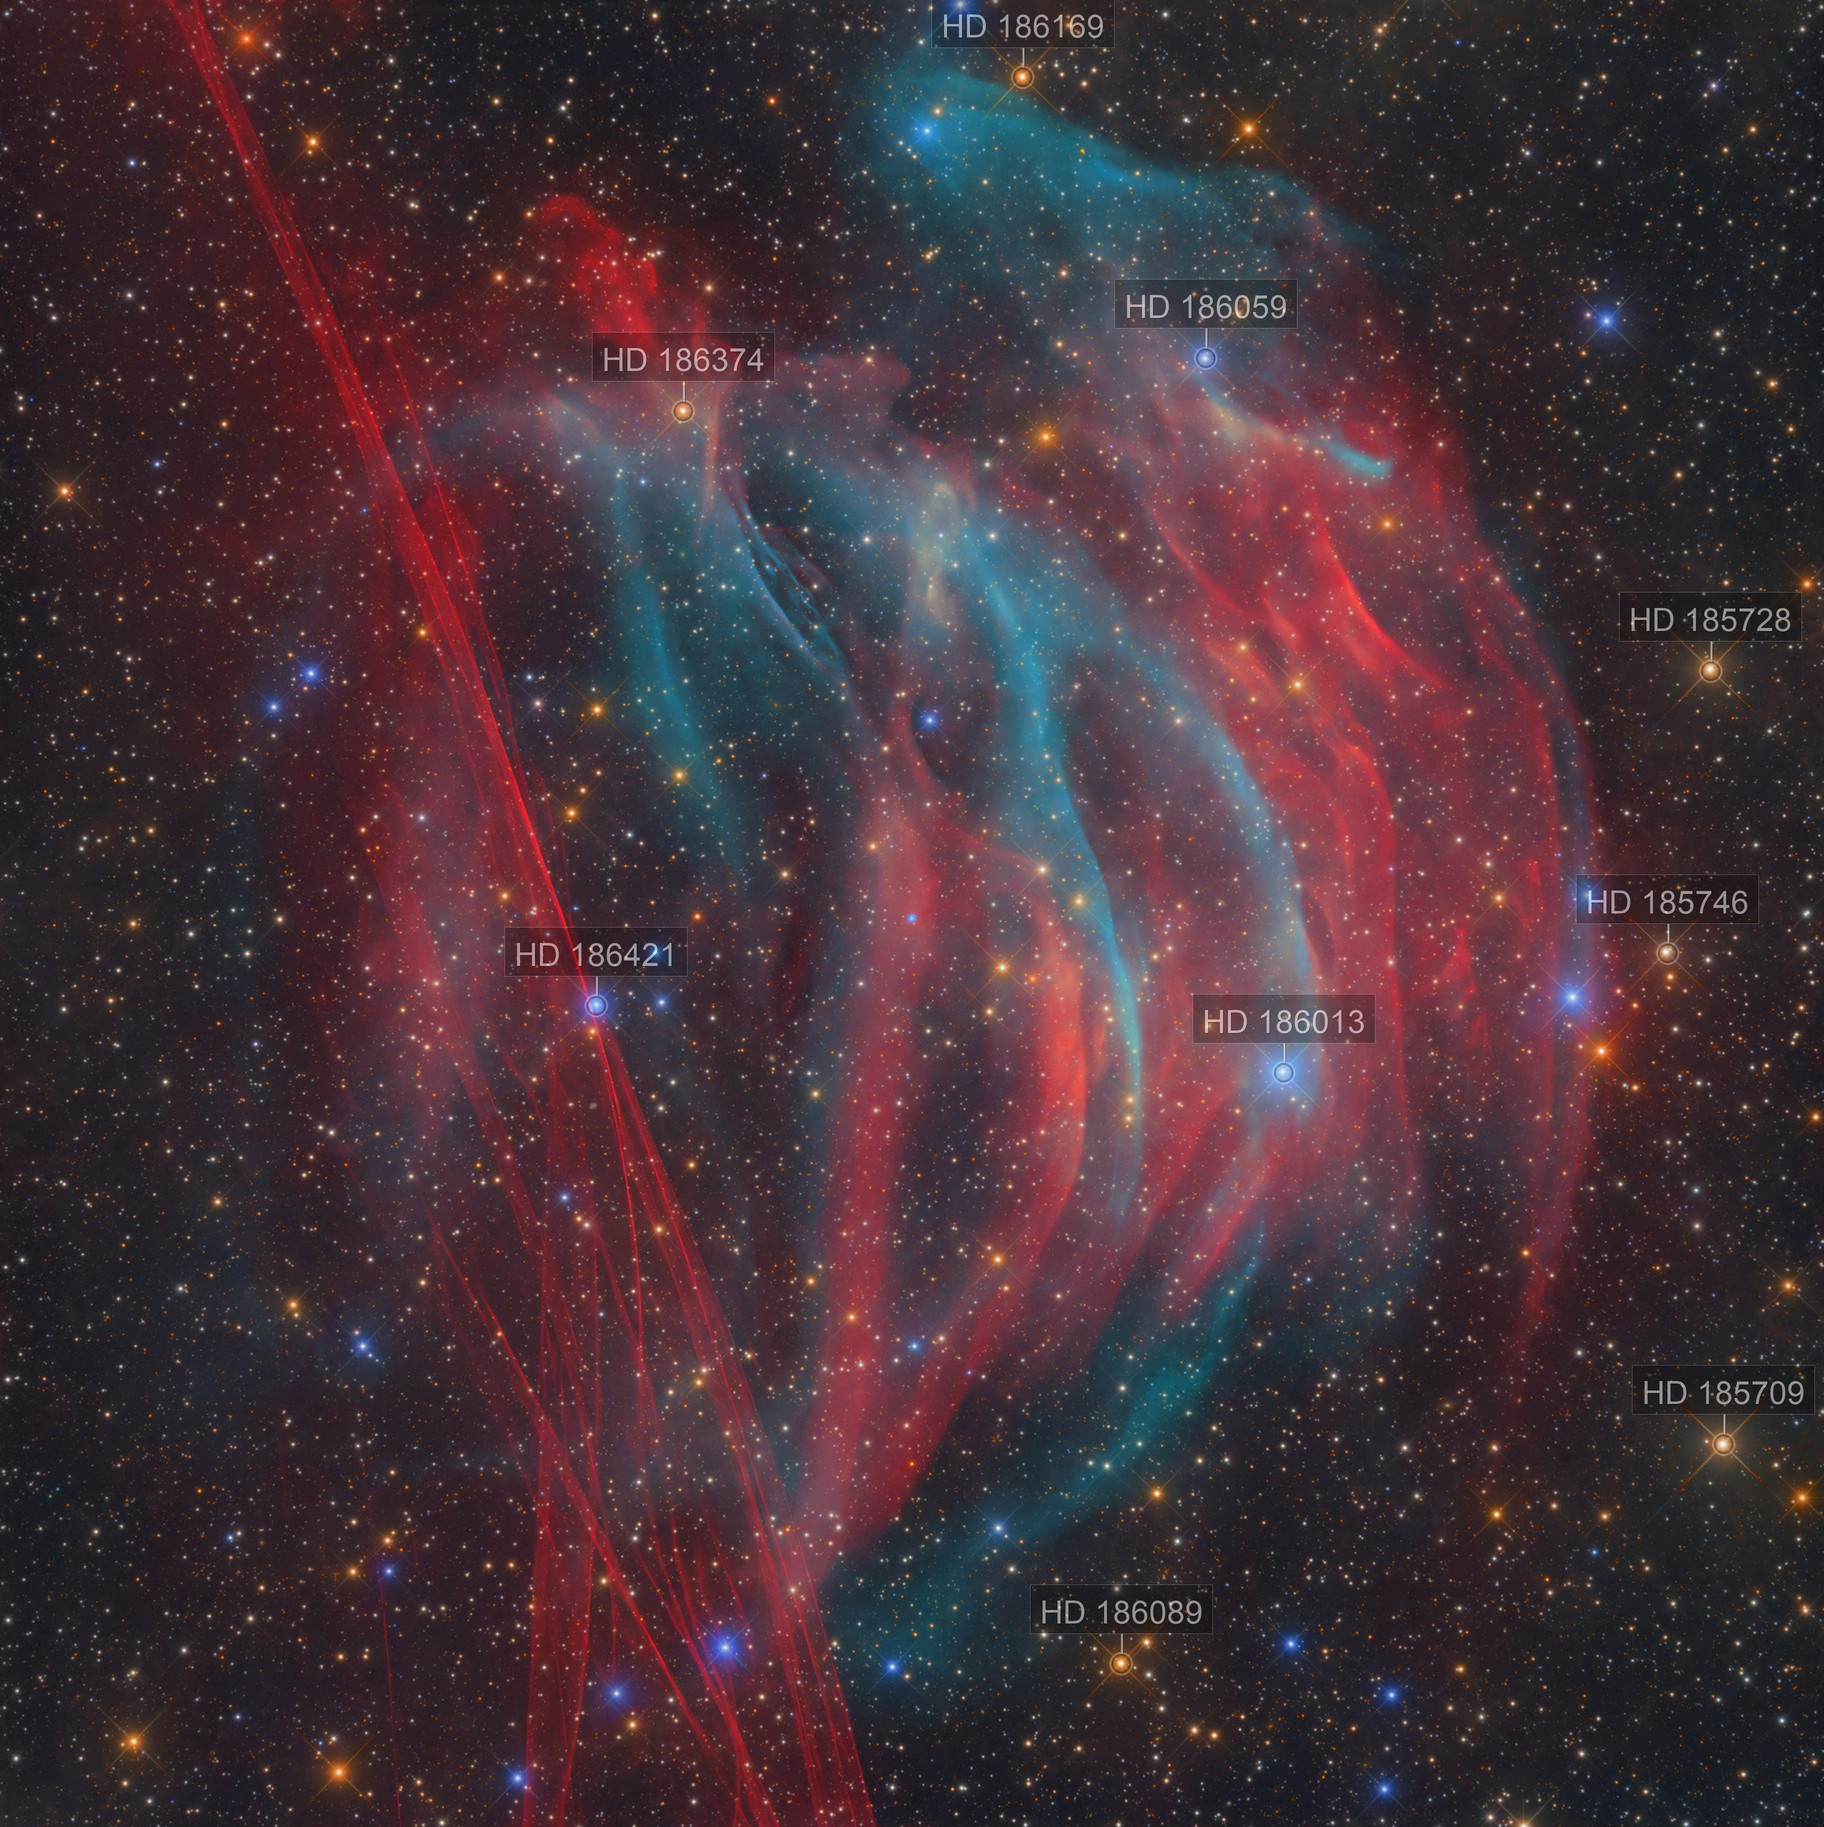 NEW DISCOVERY - PaStDr 8 / The Bärenstein Nebula and the Supernova remnant G354-33